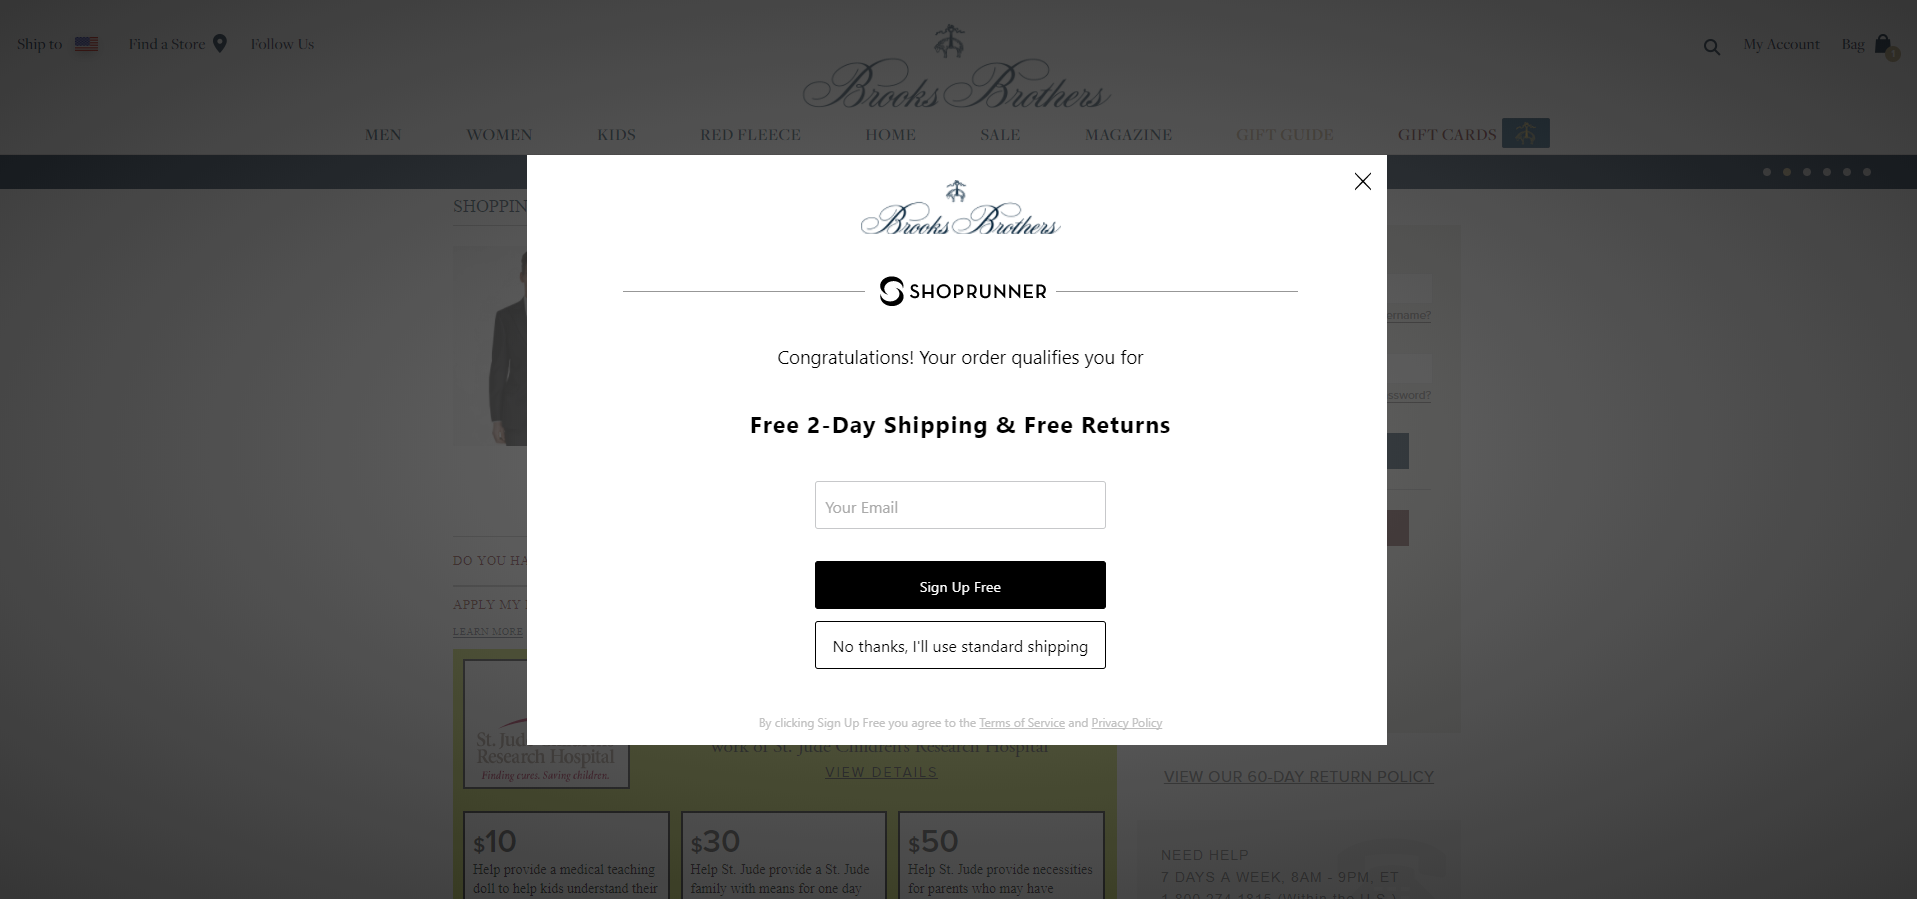 Brooks Brothers - Cart Abandonment